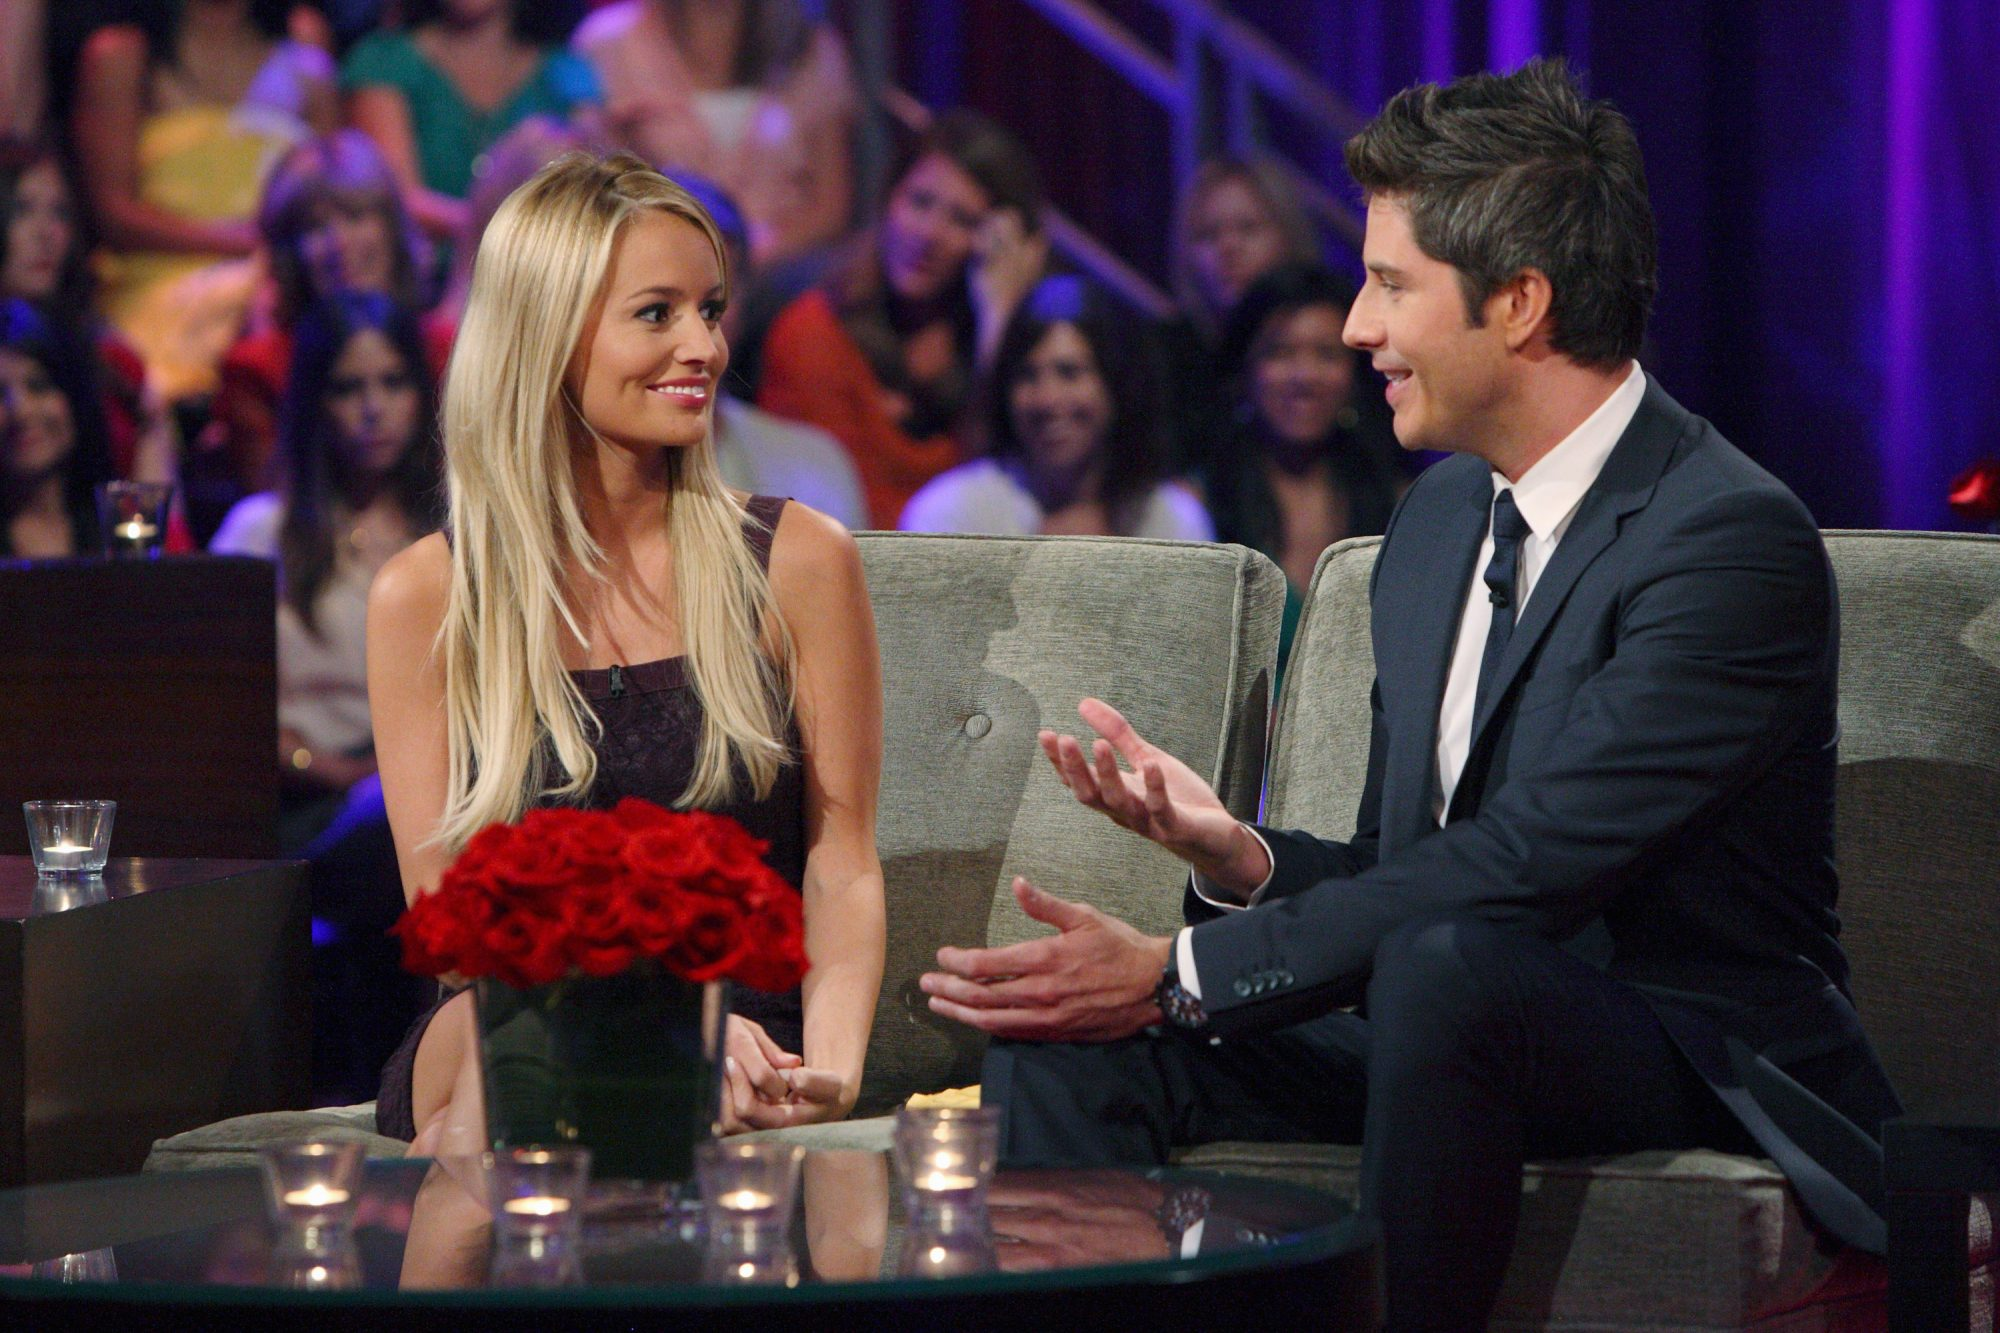 New Bachelor - Arie Luyendyk